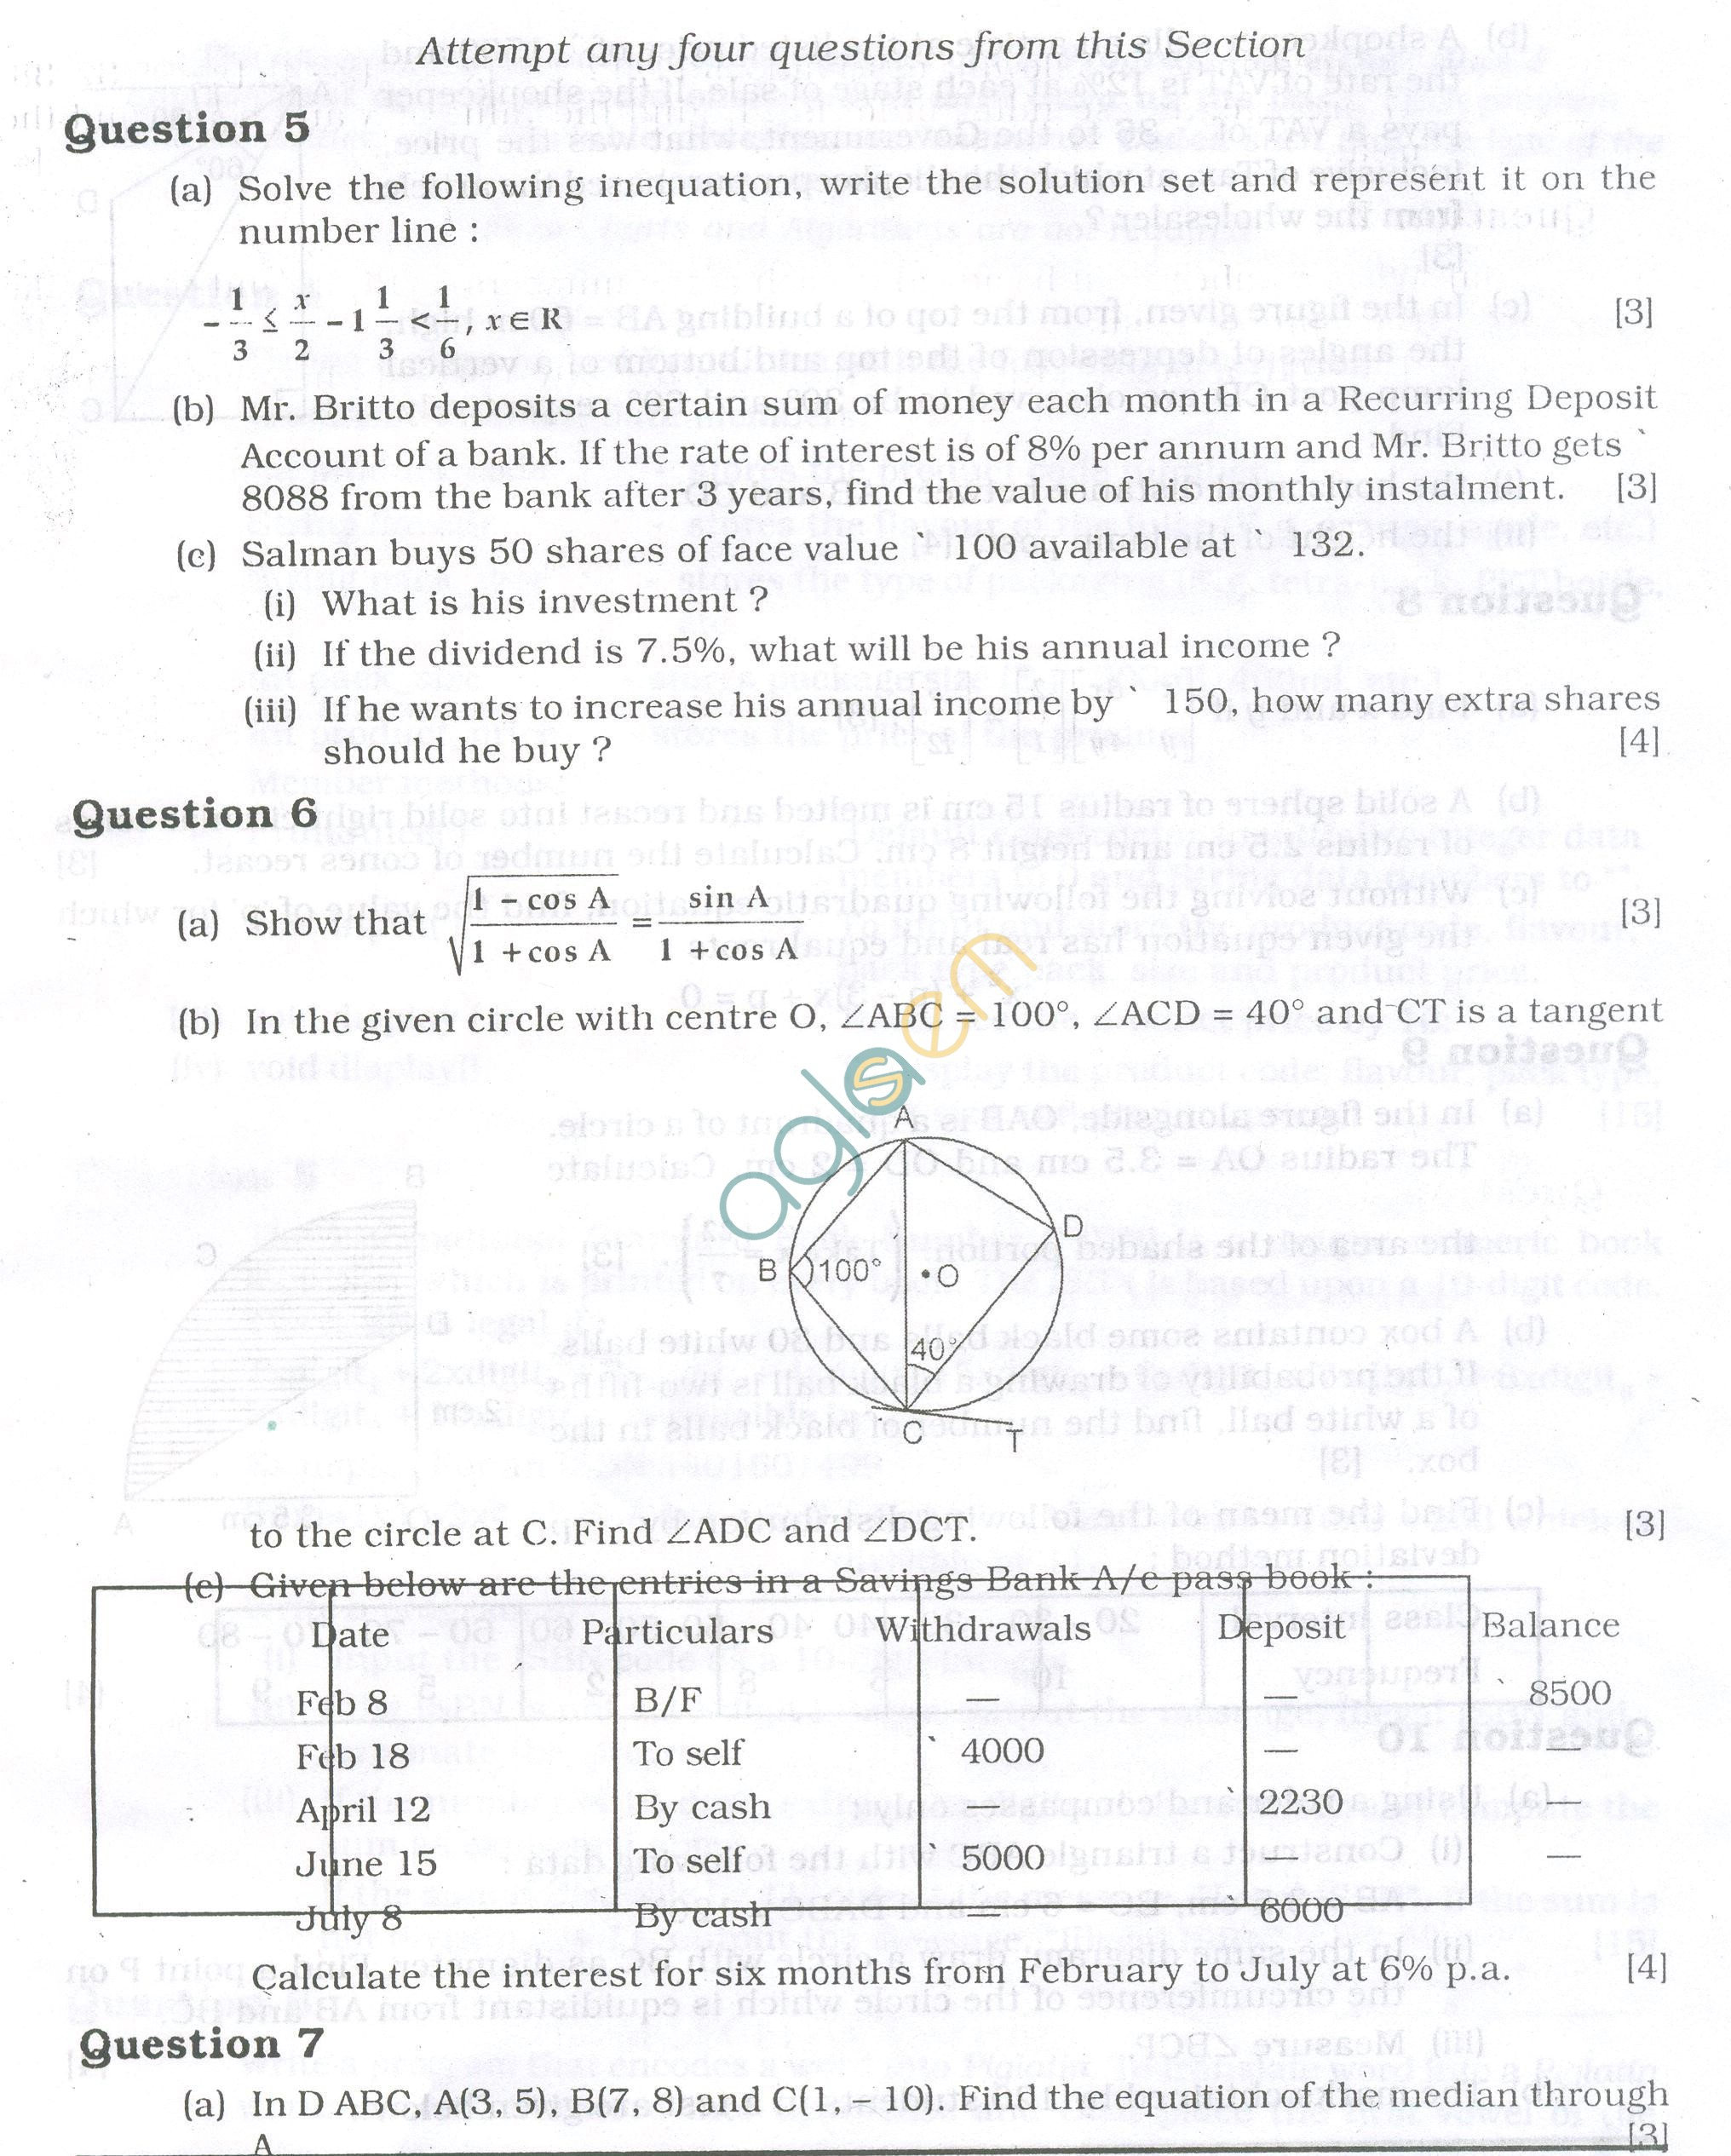 ICSE Question Papers 2013 for Class 10 - Mathematics